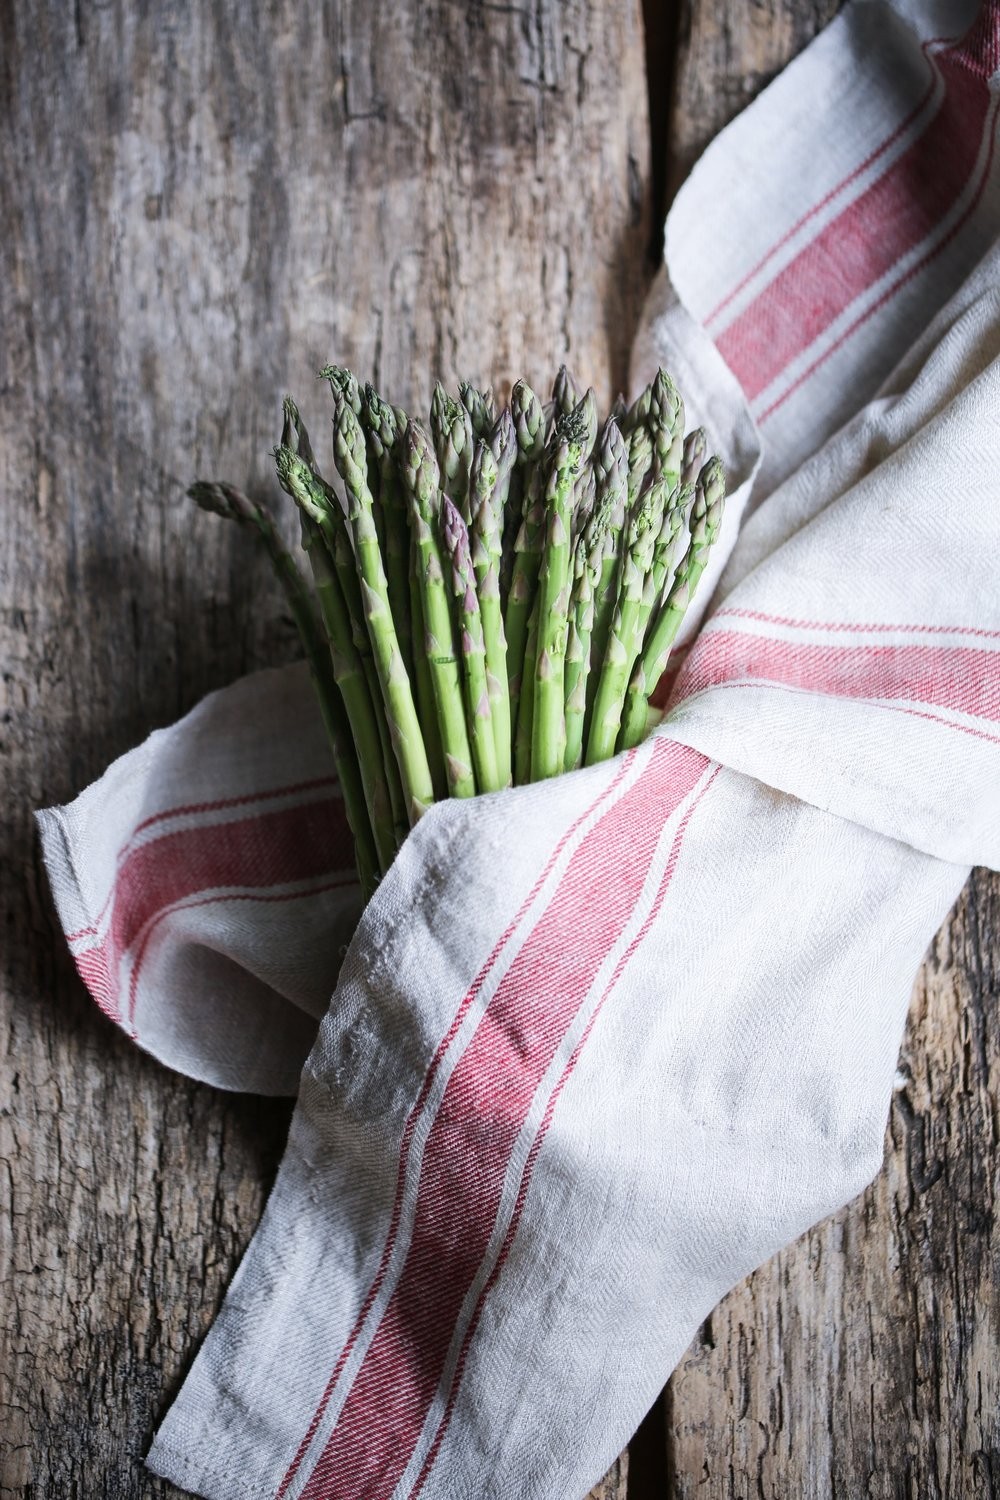 Favorite spring vegetables and how to cook with them | Tons of great vegan meal ideas using delicious fresh spring produce like peas, radishes, leeks, fennel, spring onions, artichokes, asparagus and more!